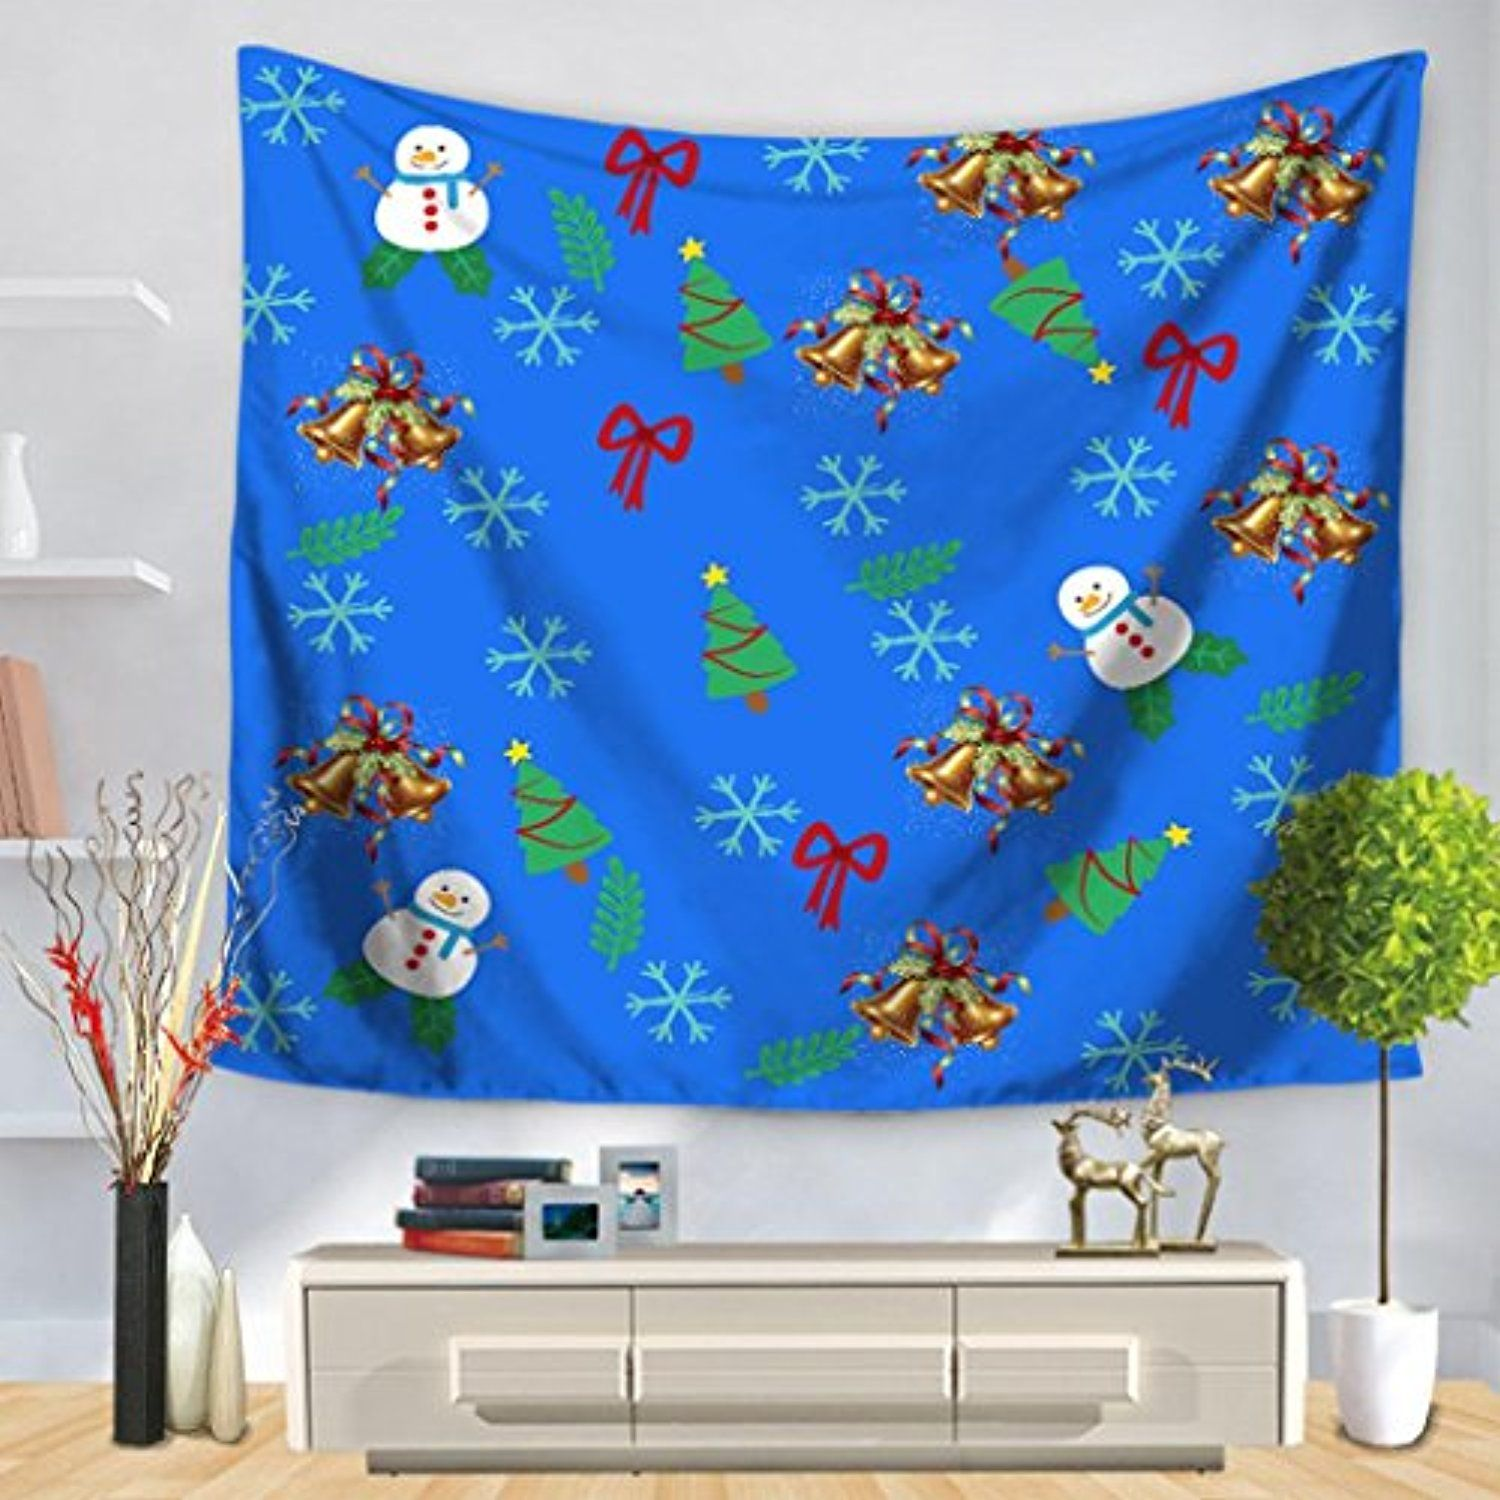 Blanket ,Usstore 1PC Christmas Party Tapestry Hanging Mats For ...